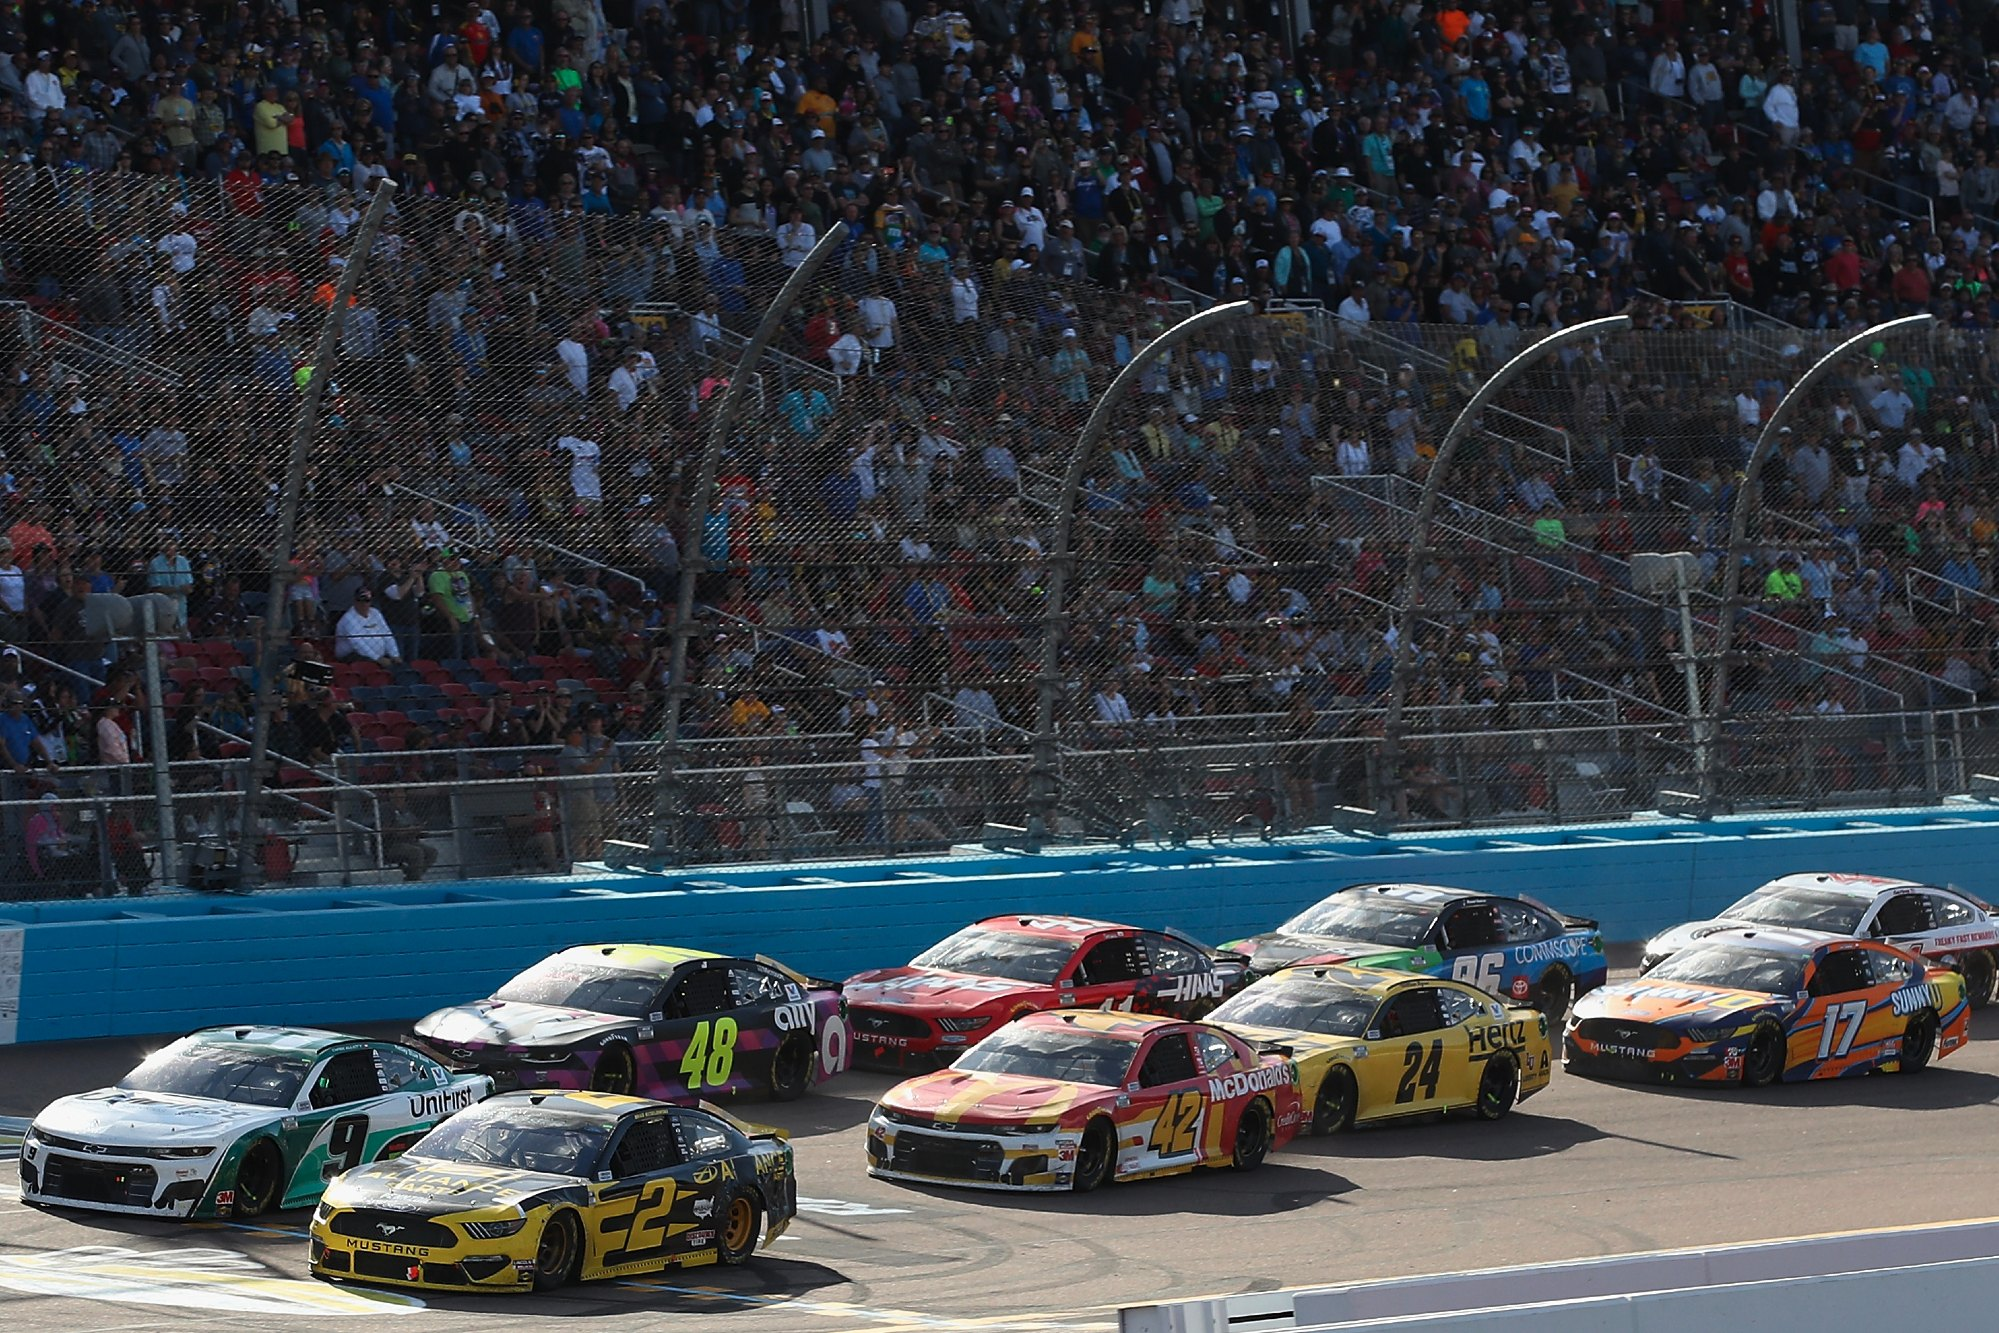 NASCAR to return to racing in May with revised schedule